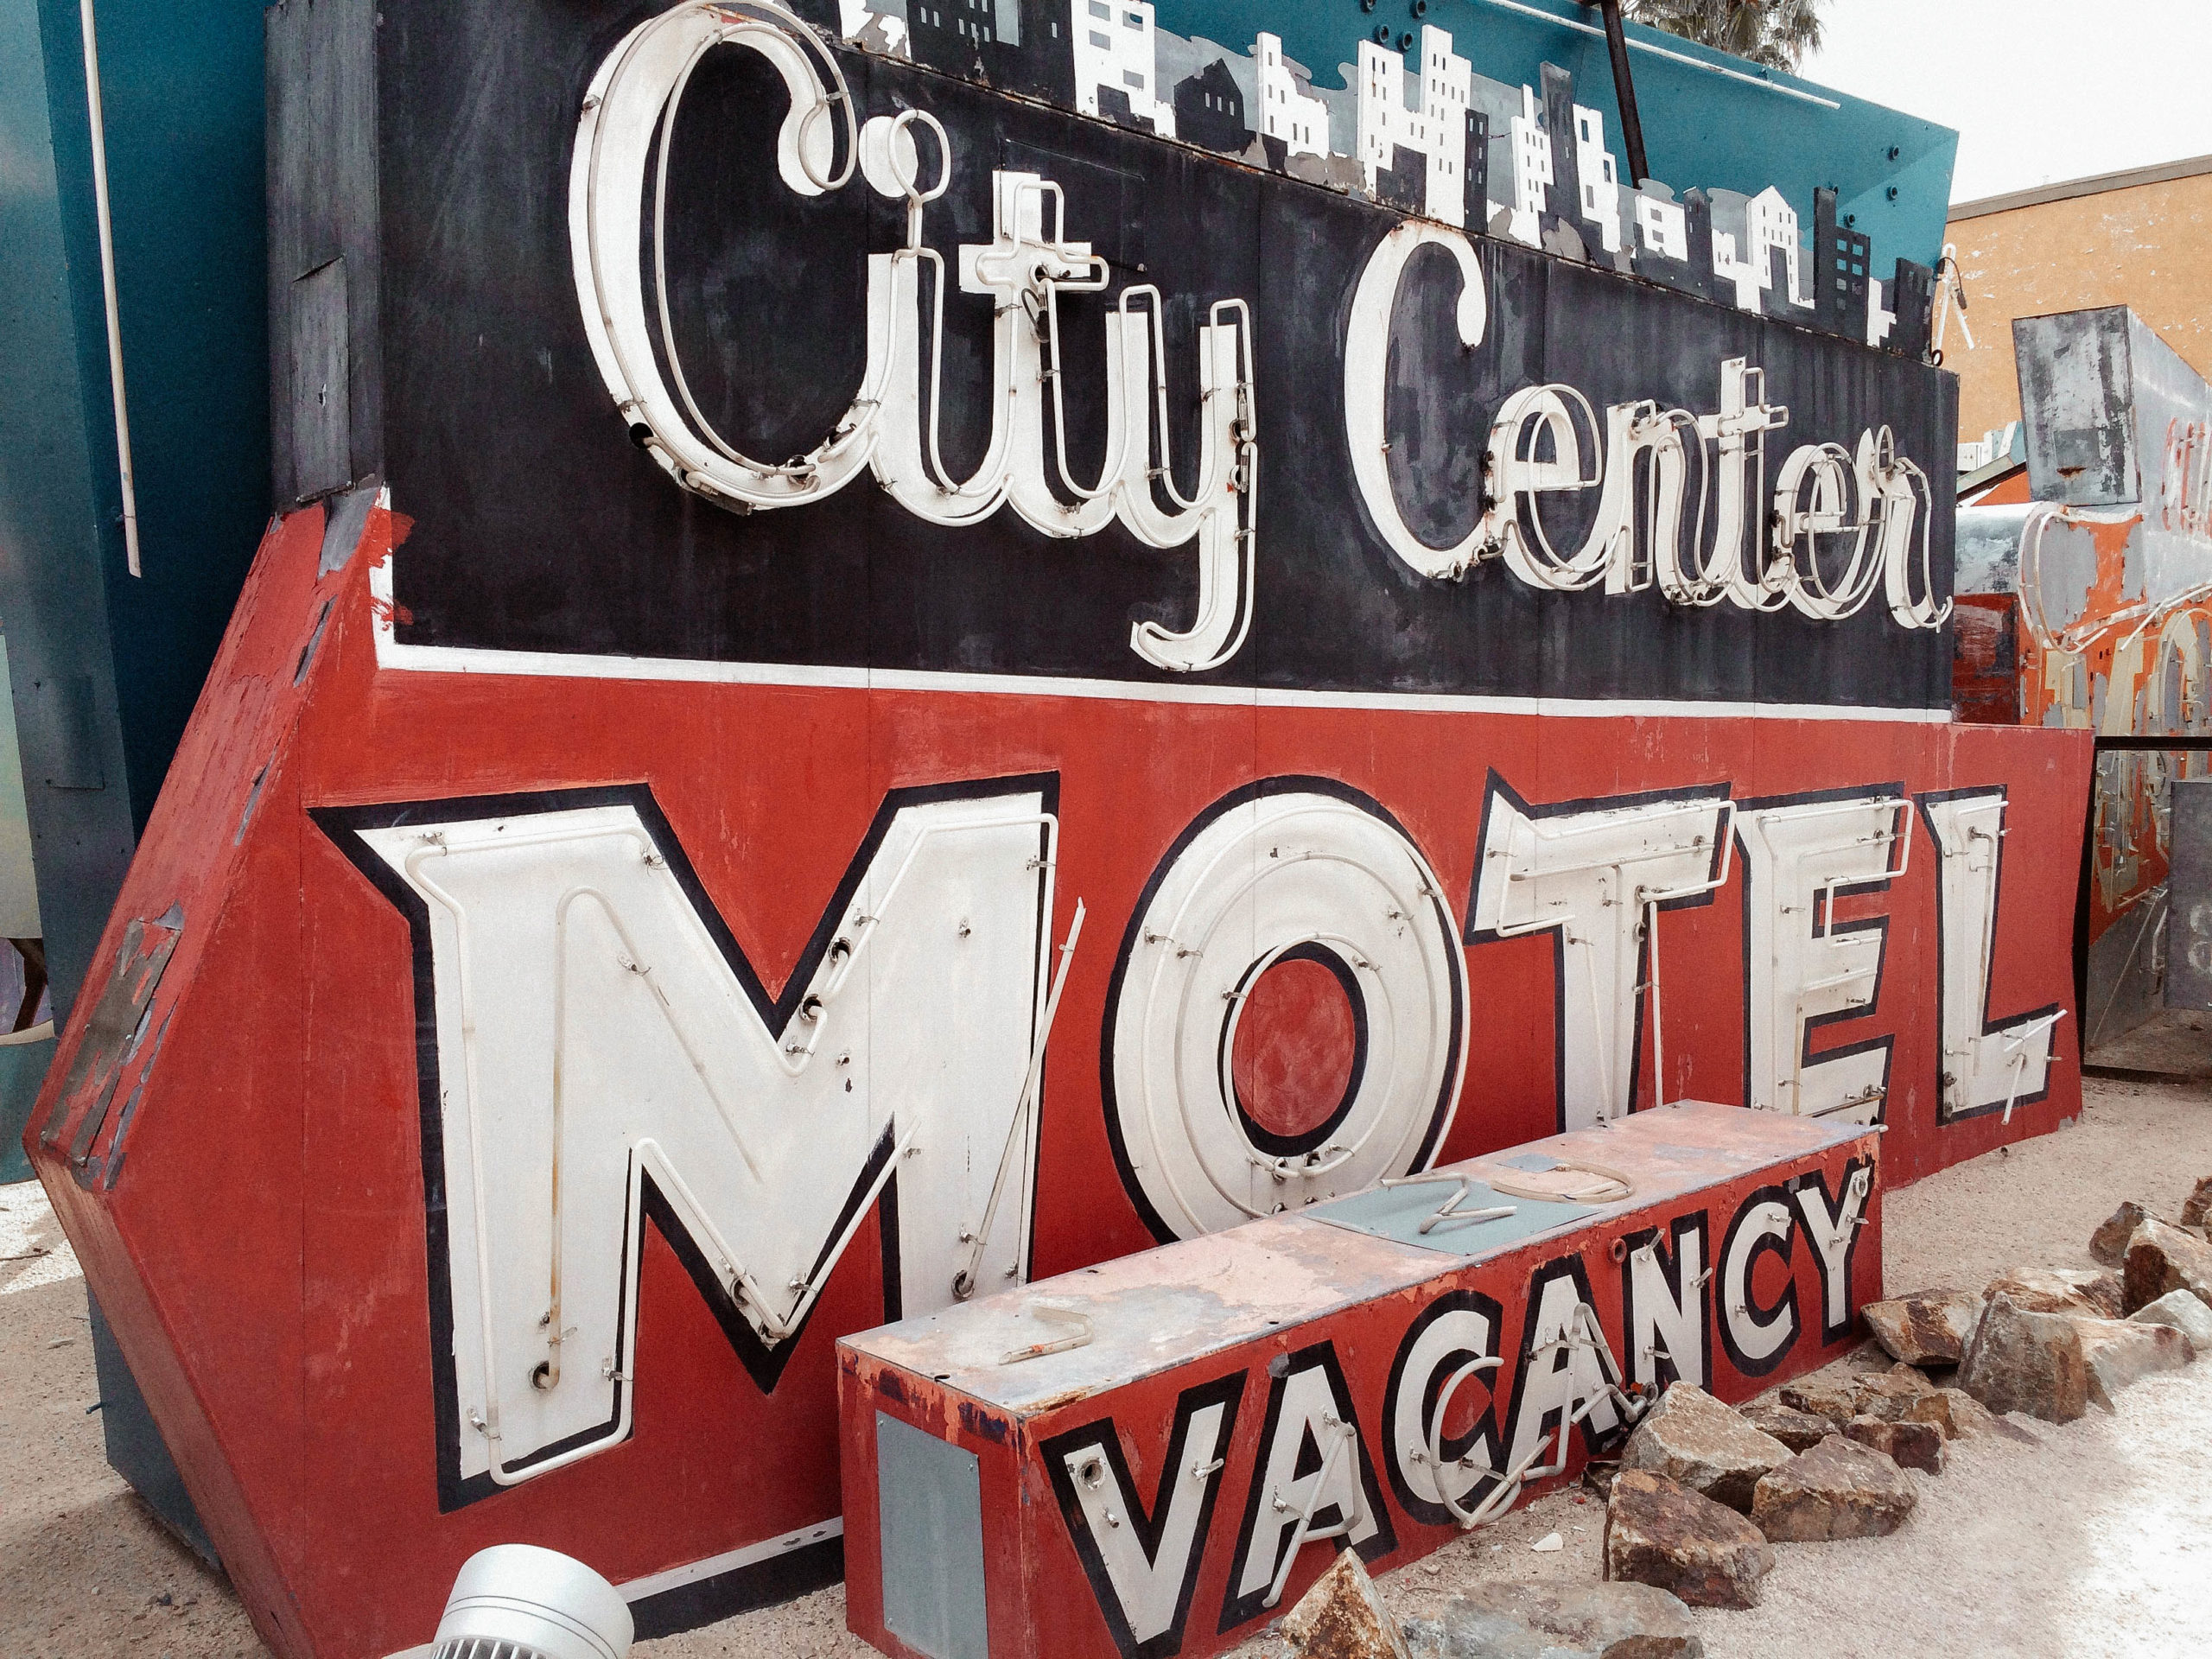 LAS VEGAS: NEON SIGN BONEYARD